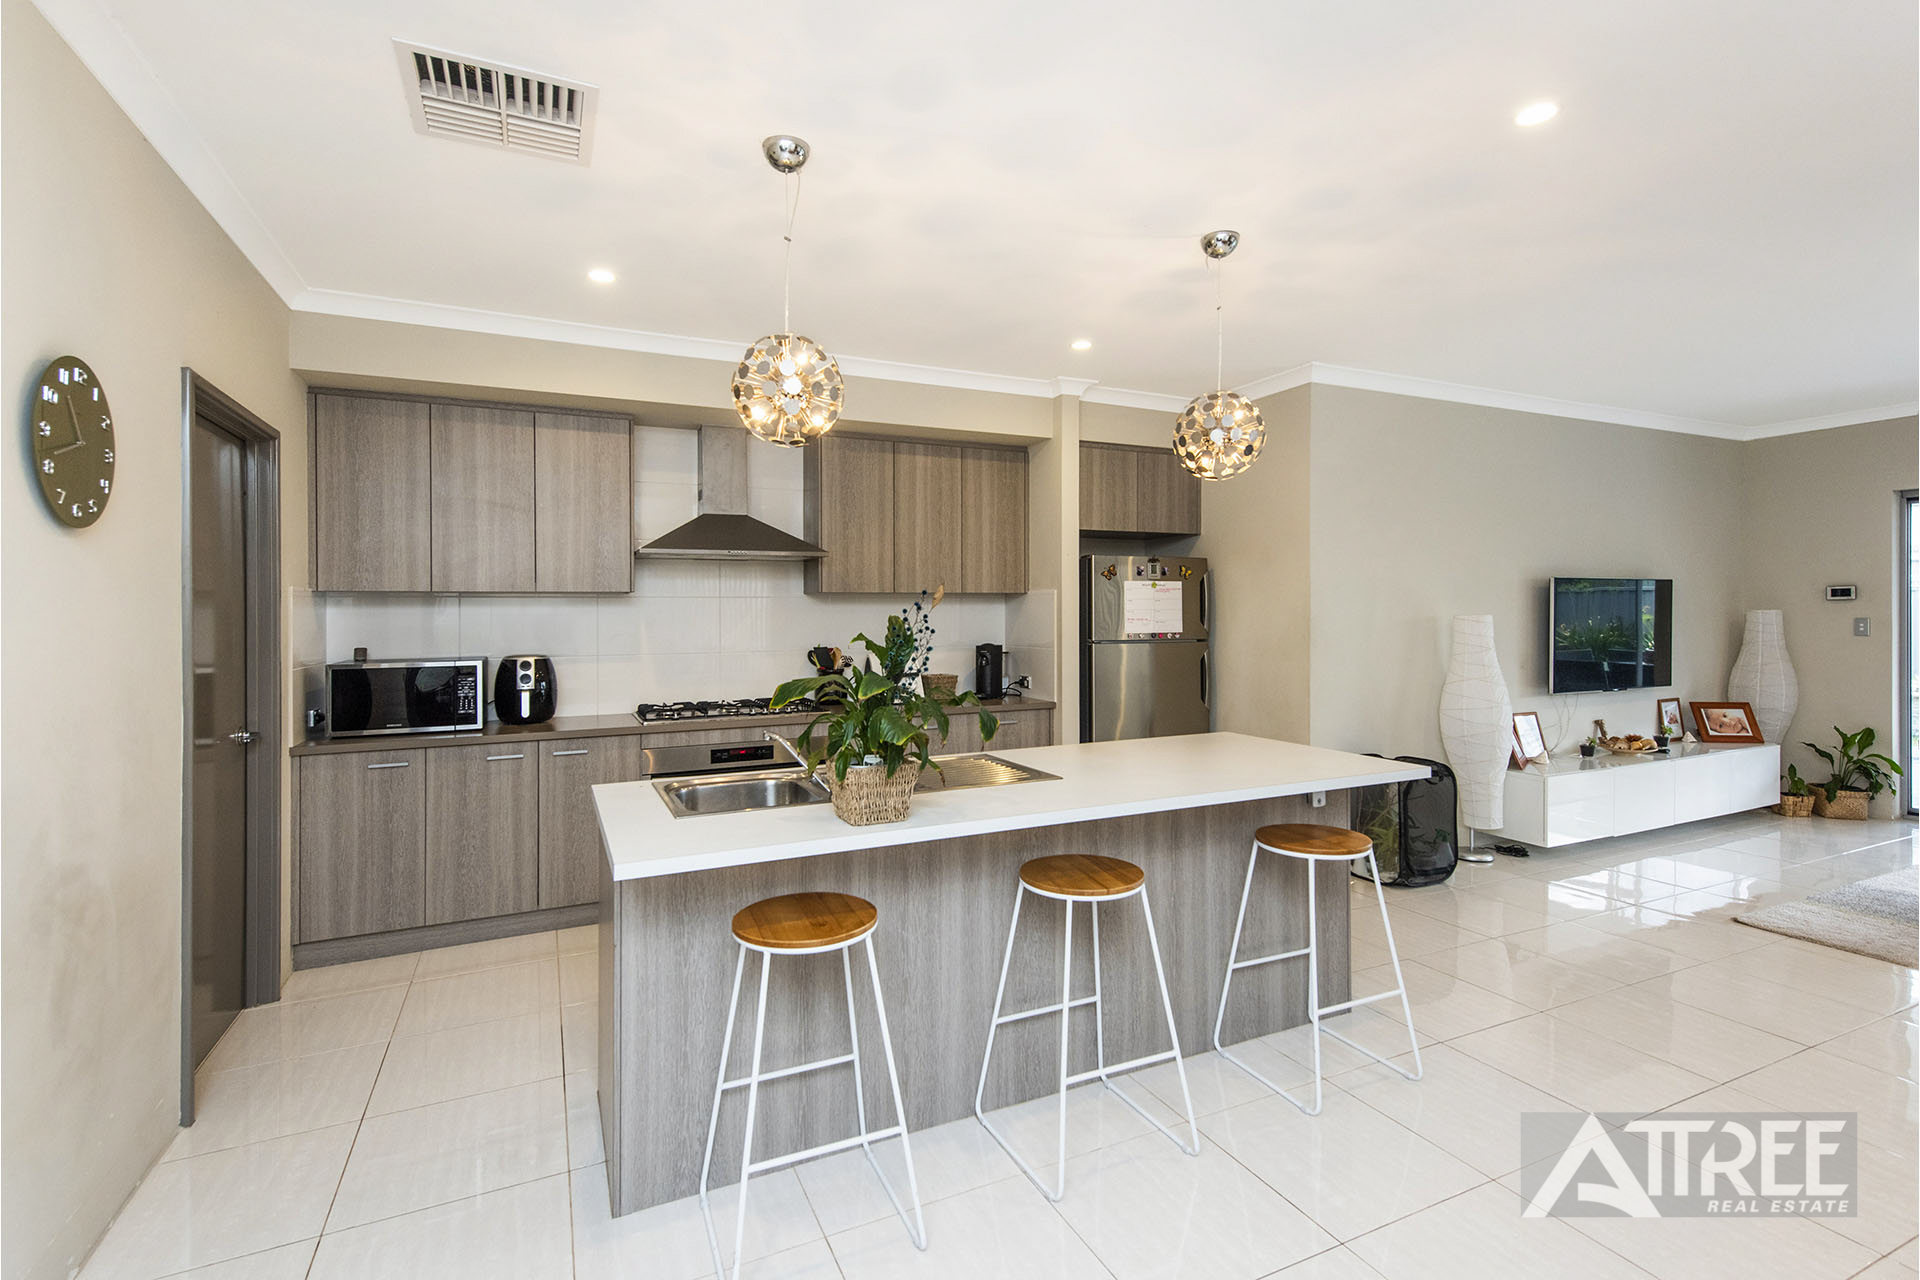 Property for sale in PIARA WATERS, 339 Wright Road : Attree Real Estate